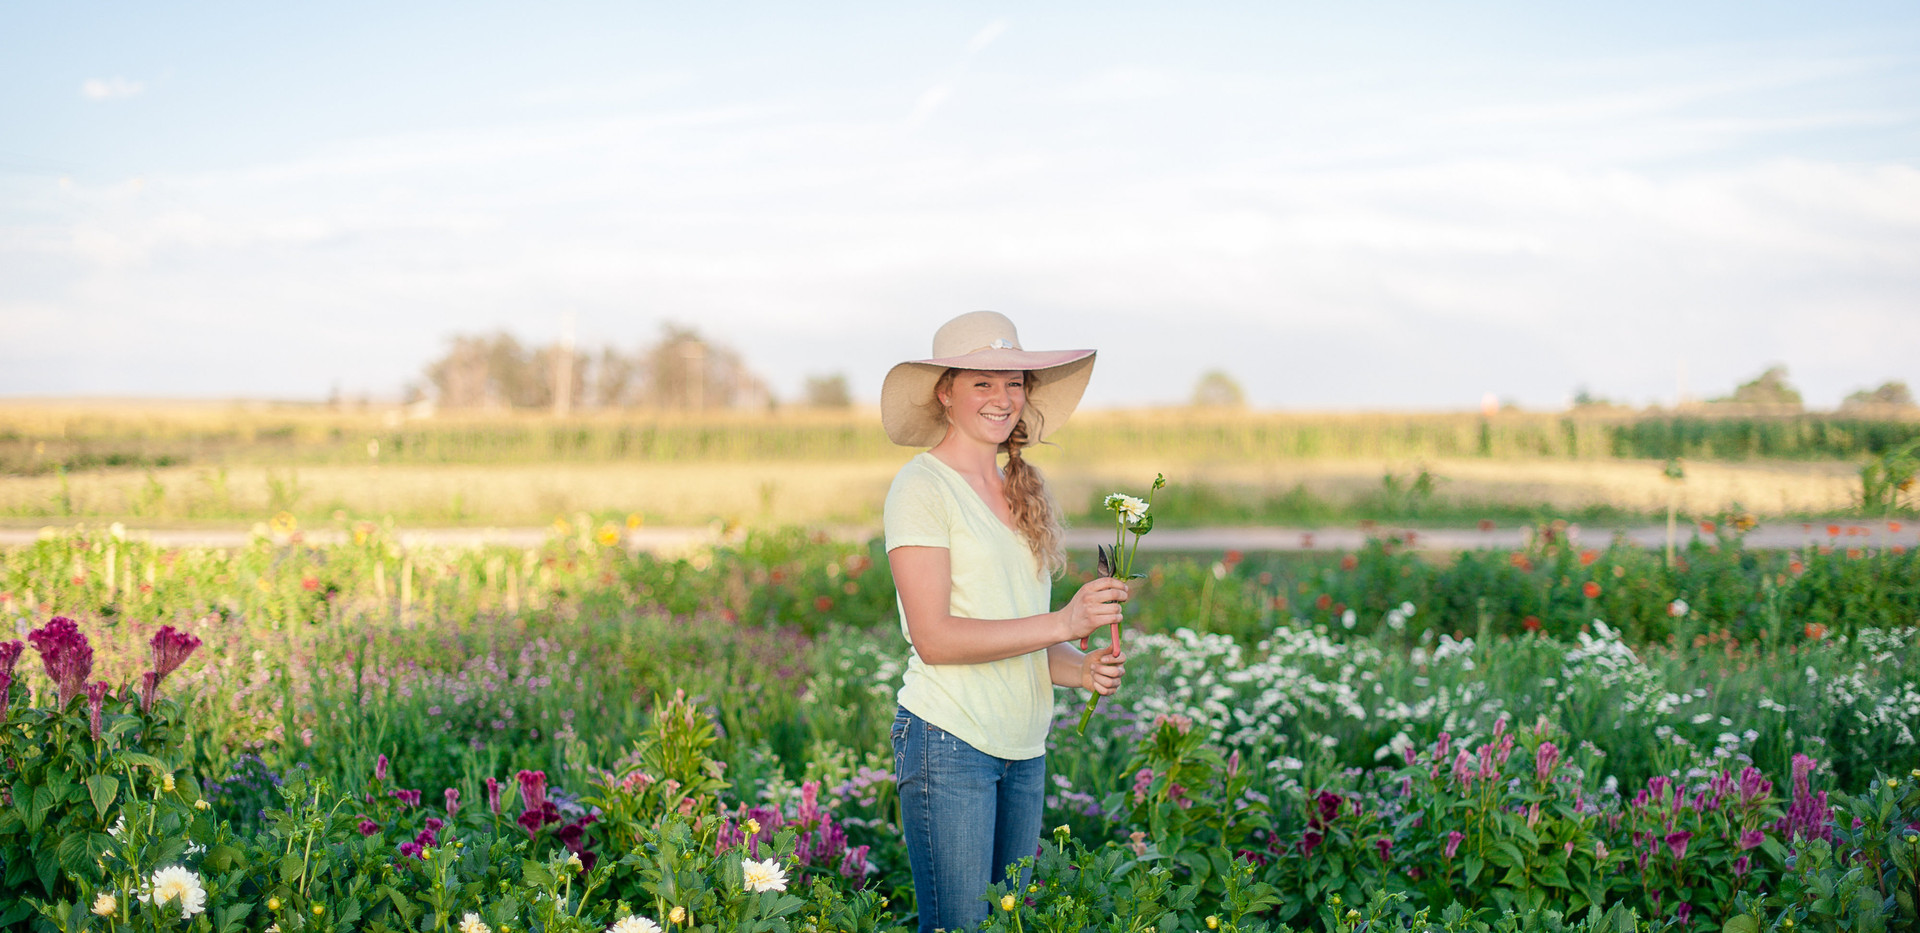 Me in My First Flower Field, Photo Credit: Kira Ellen Photography